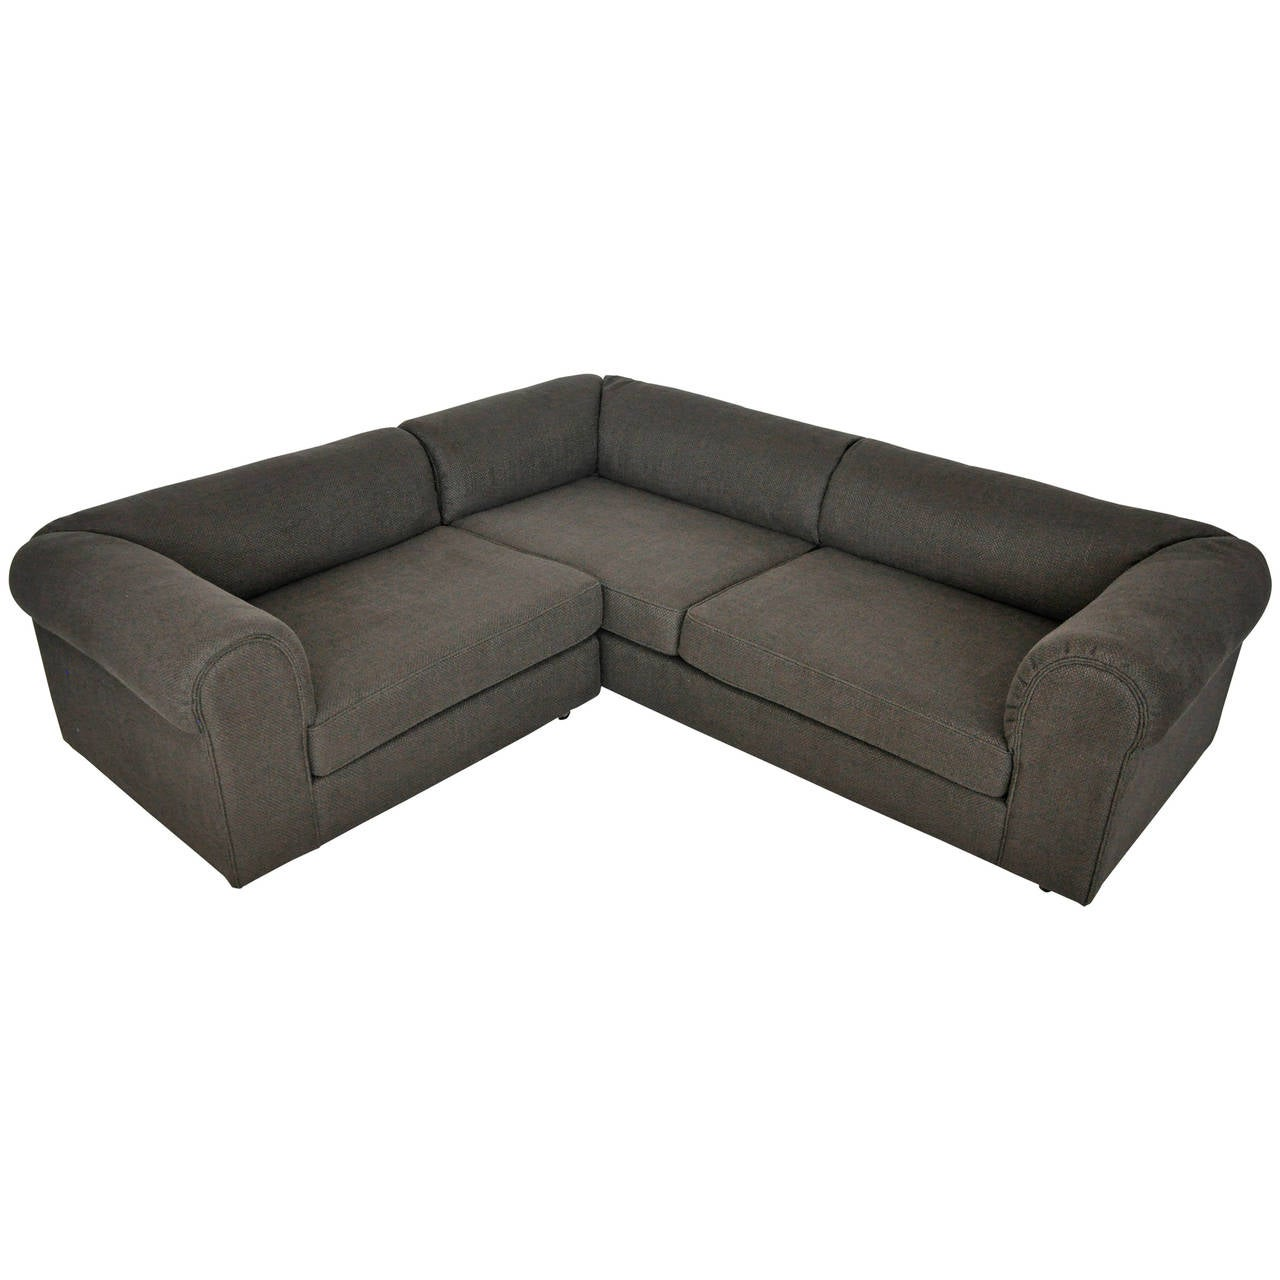 "Dunbar ""Harlow"" Sectional Sofa by Edward Wormley 1"